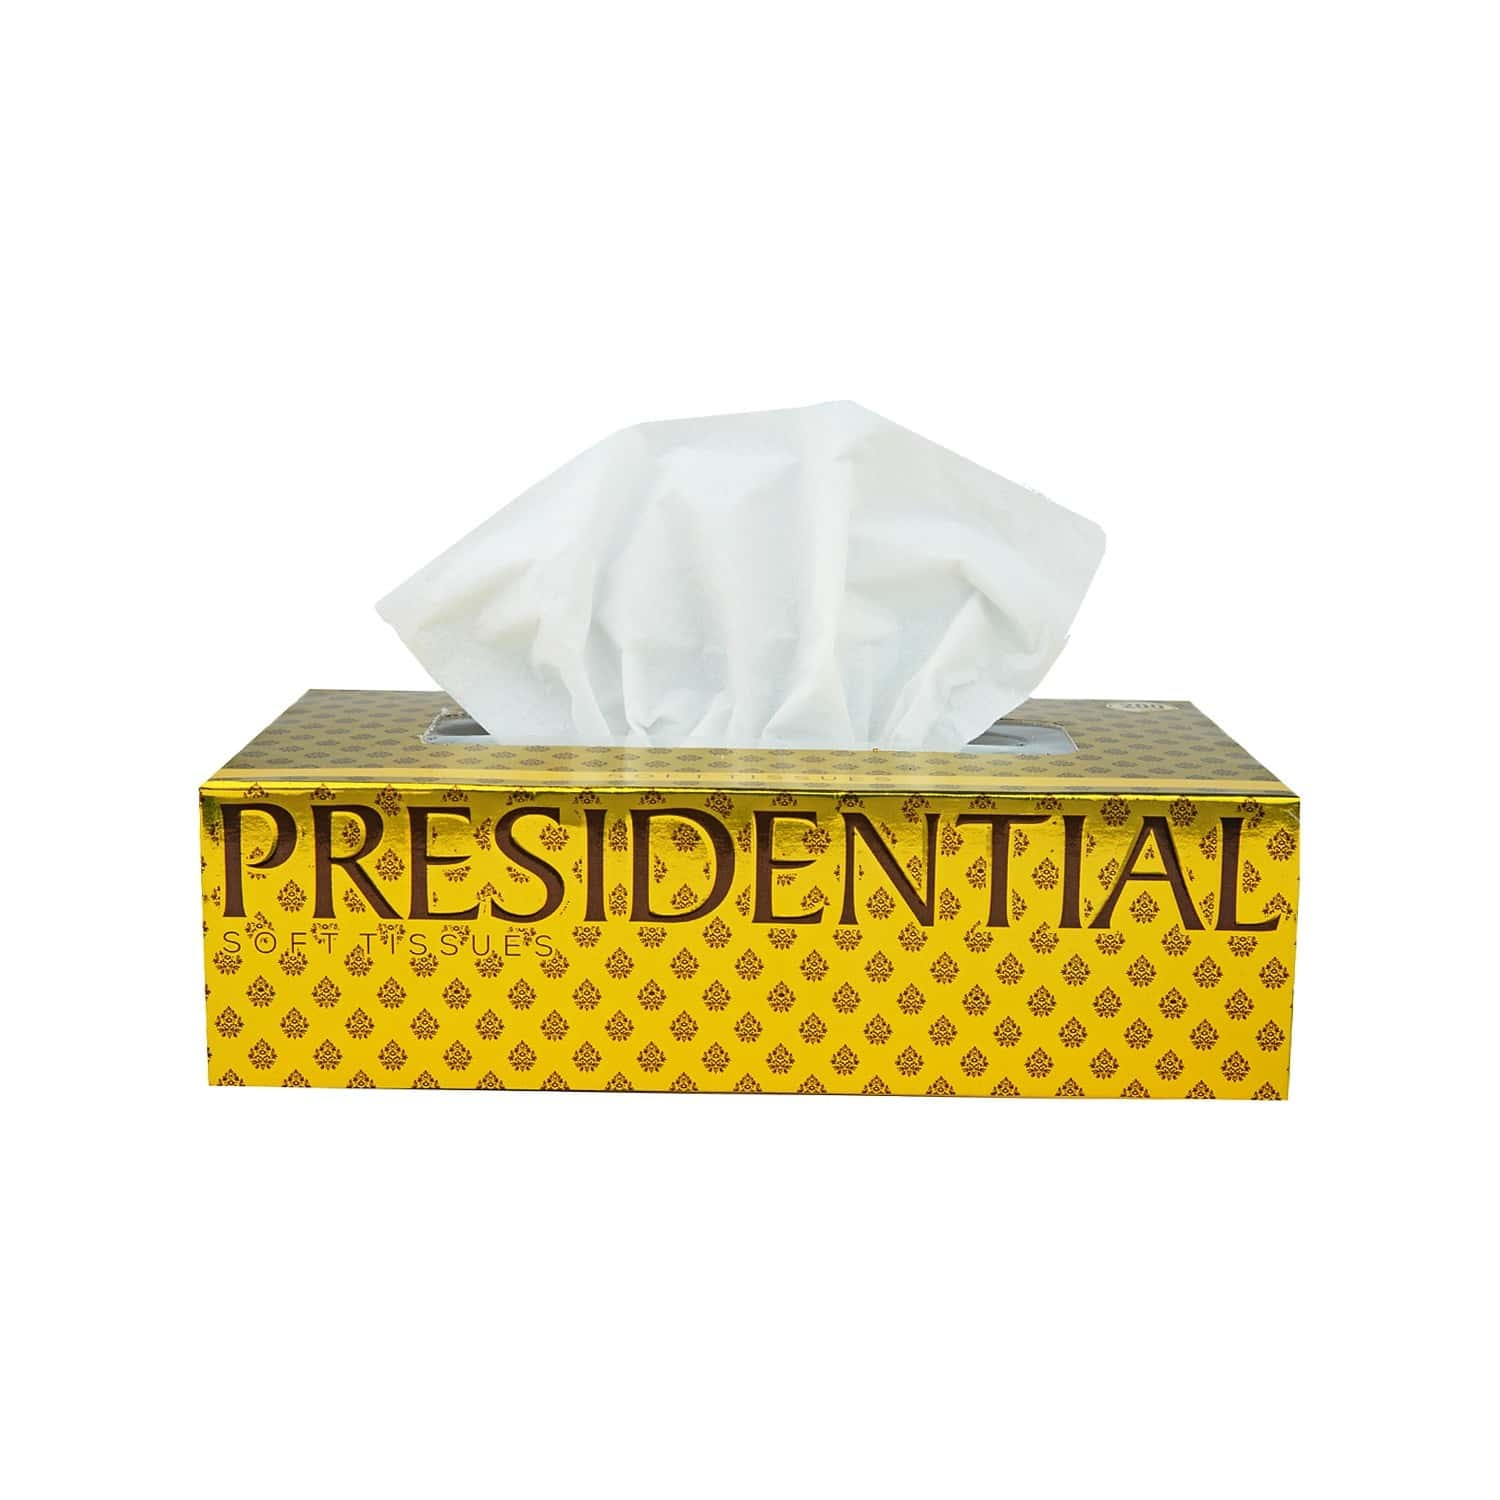 Presidential Lux Tissue Paper Box ( Pack Of 2 ) - 200 Tissues